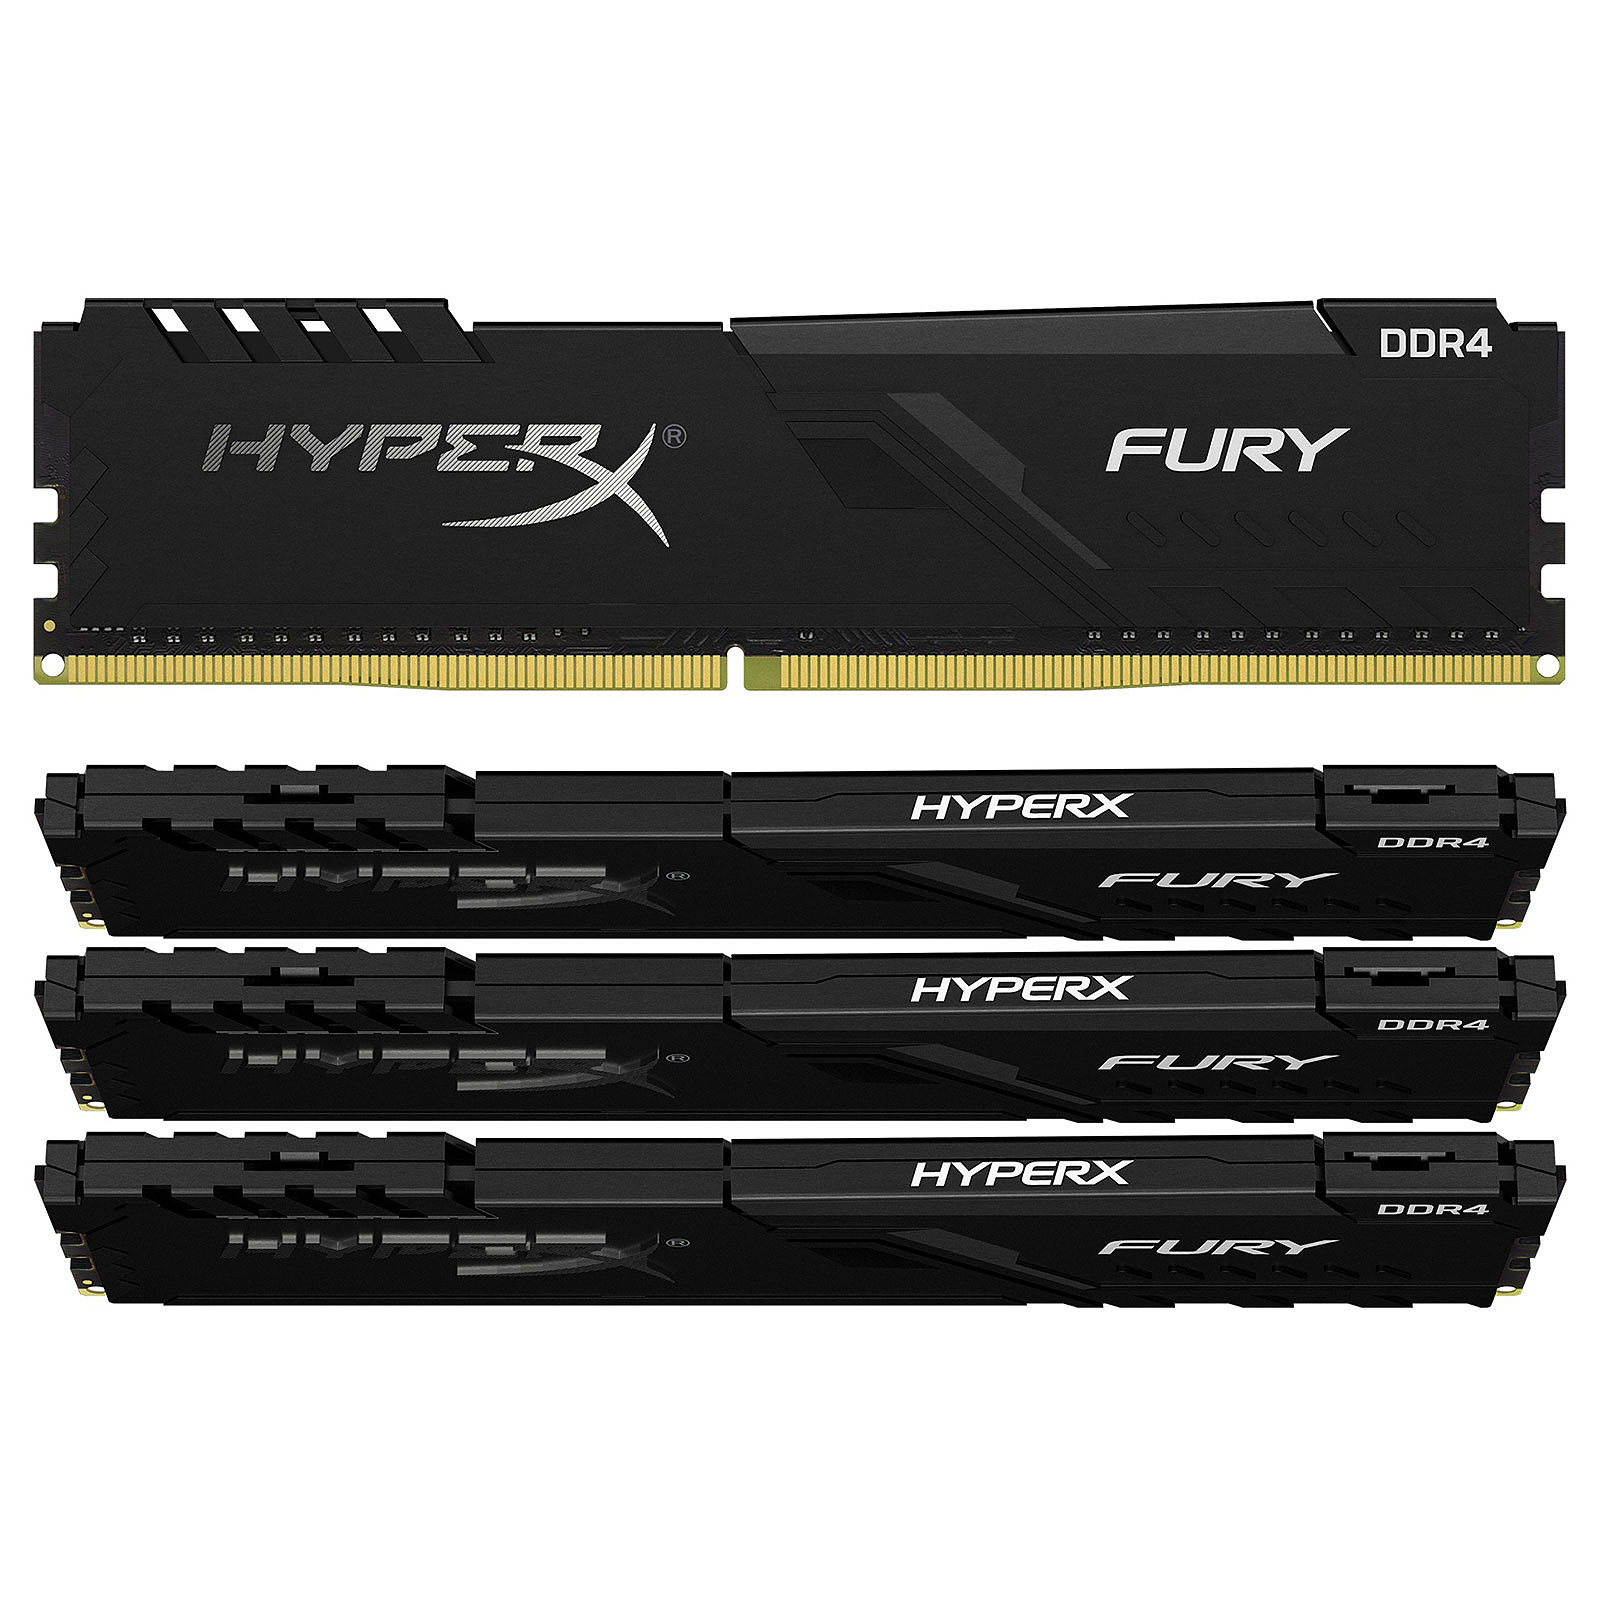 HyperX Fury 64 GB (4 x 16 GB) DDR4 3466 MHz CL16